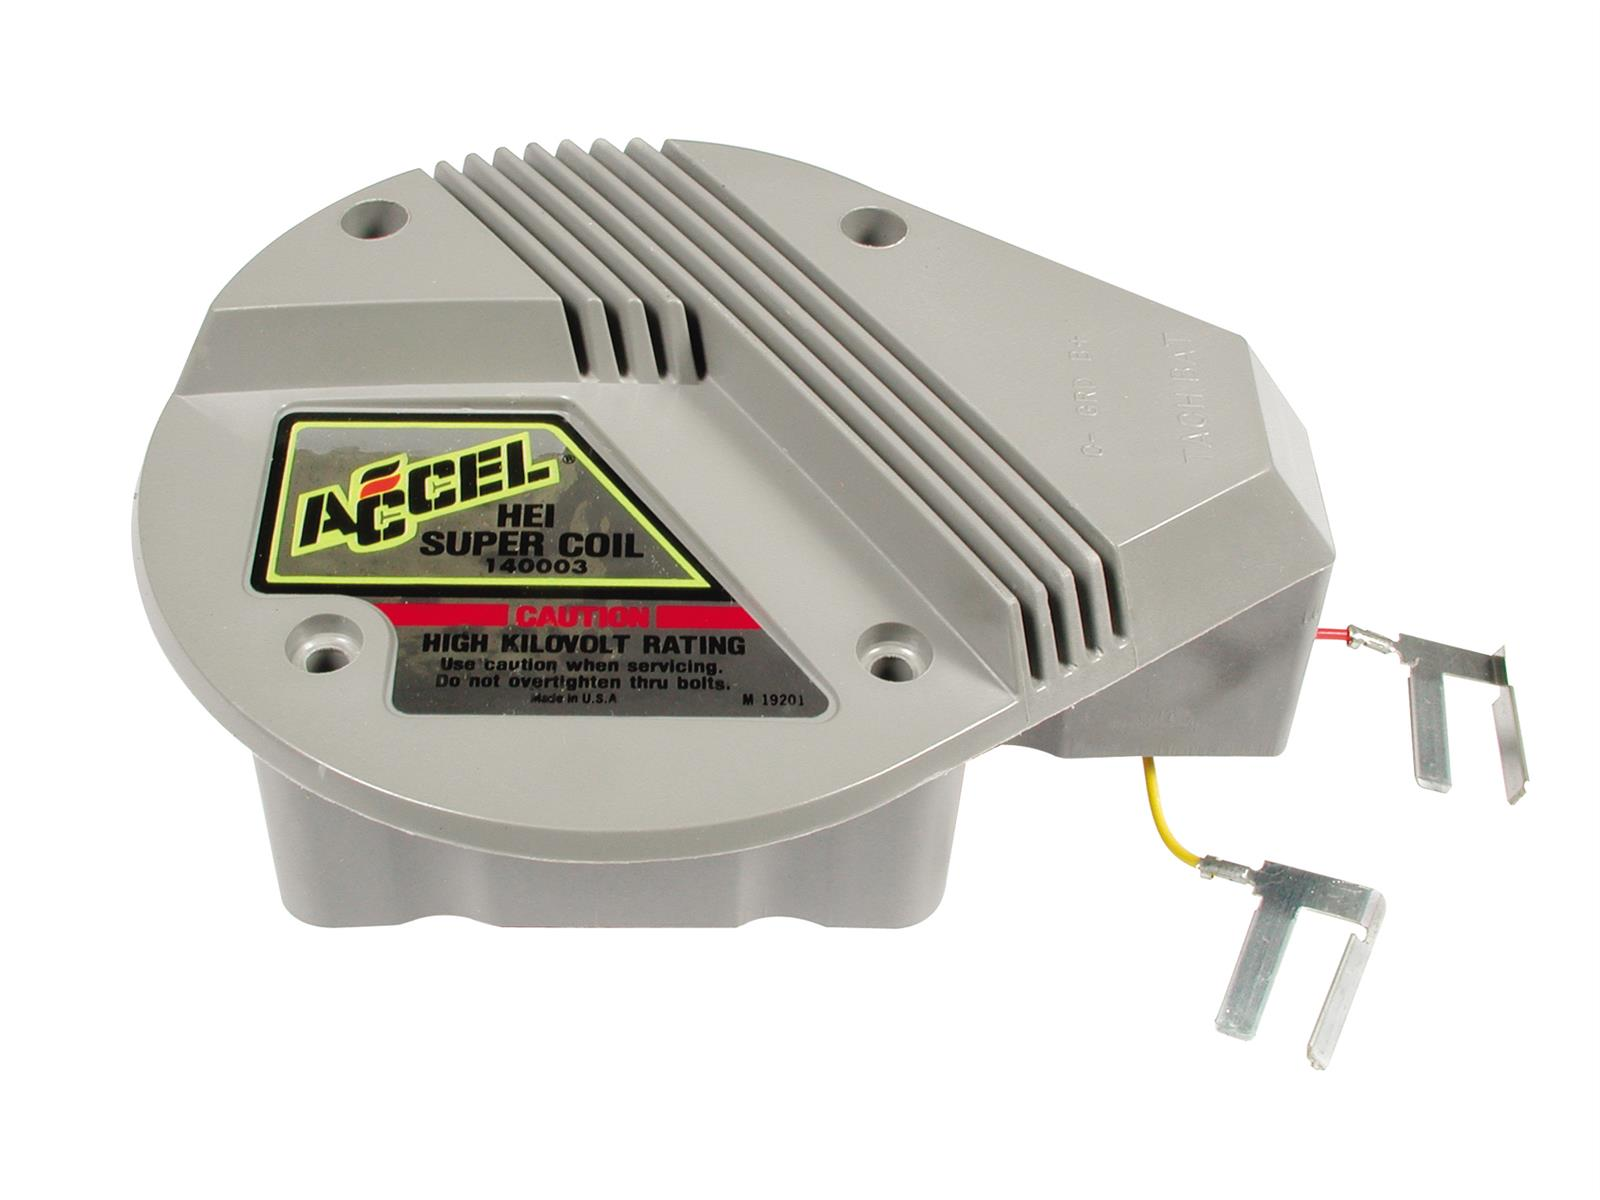 hight resolution of accel gm hei in cap super coils 140003 free shipping on orders sbc hei distributor wiring diagram accel gm hei wiring